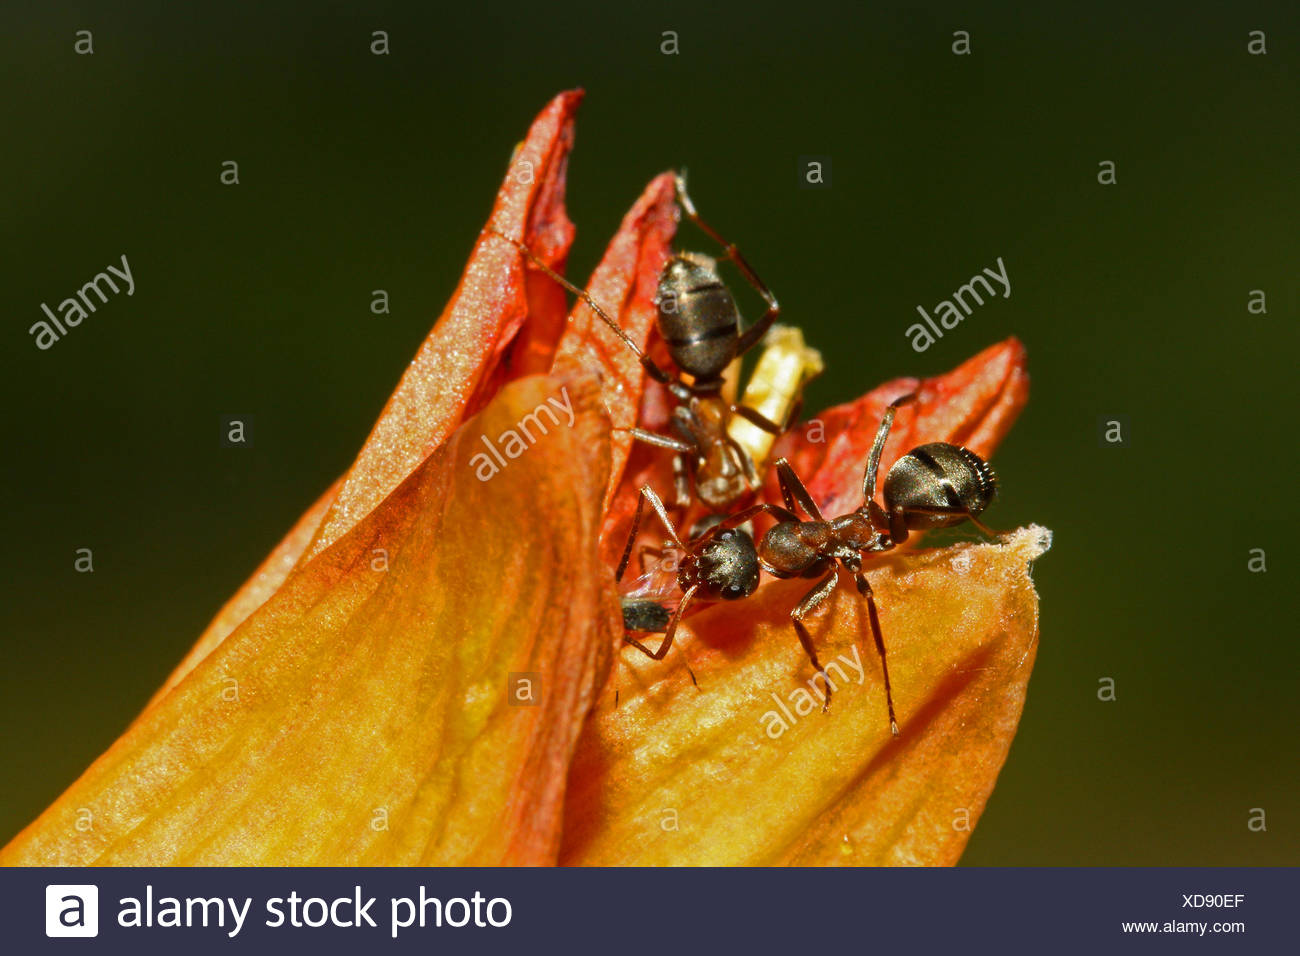 Ant on fire lily - Stock Image